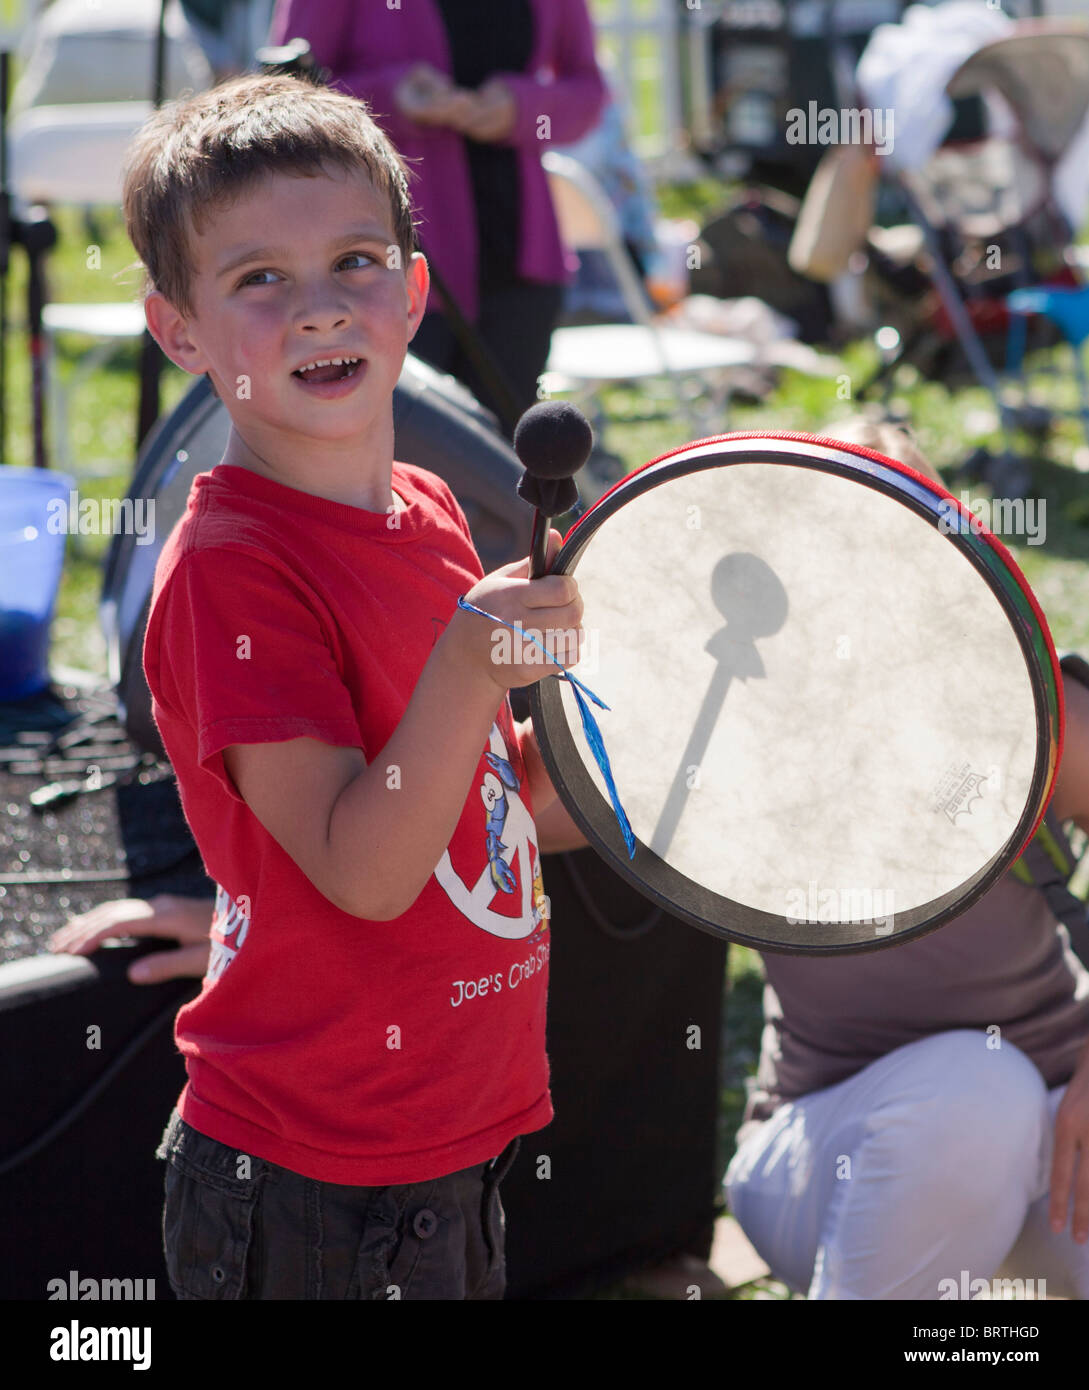 A young boy bangs on a drum at an outdoor music festival - Stock Image